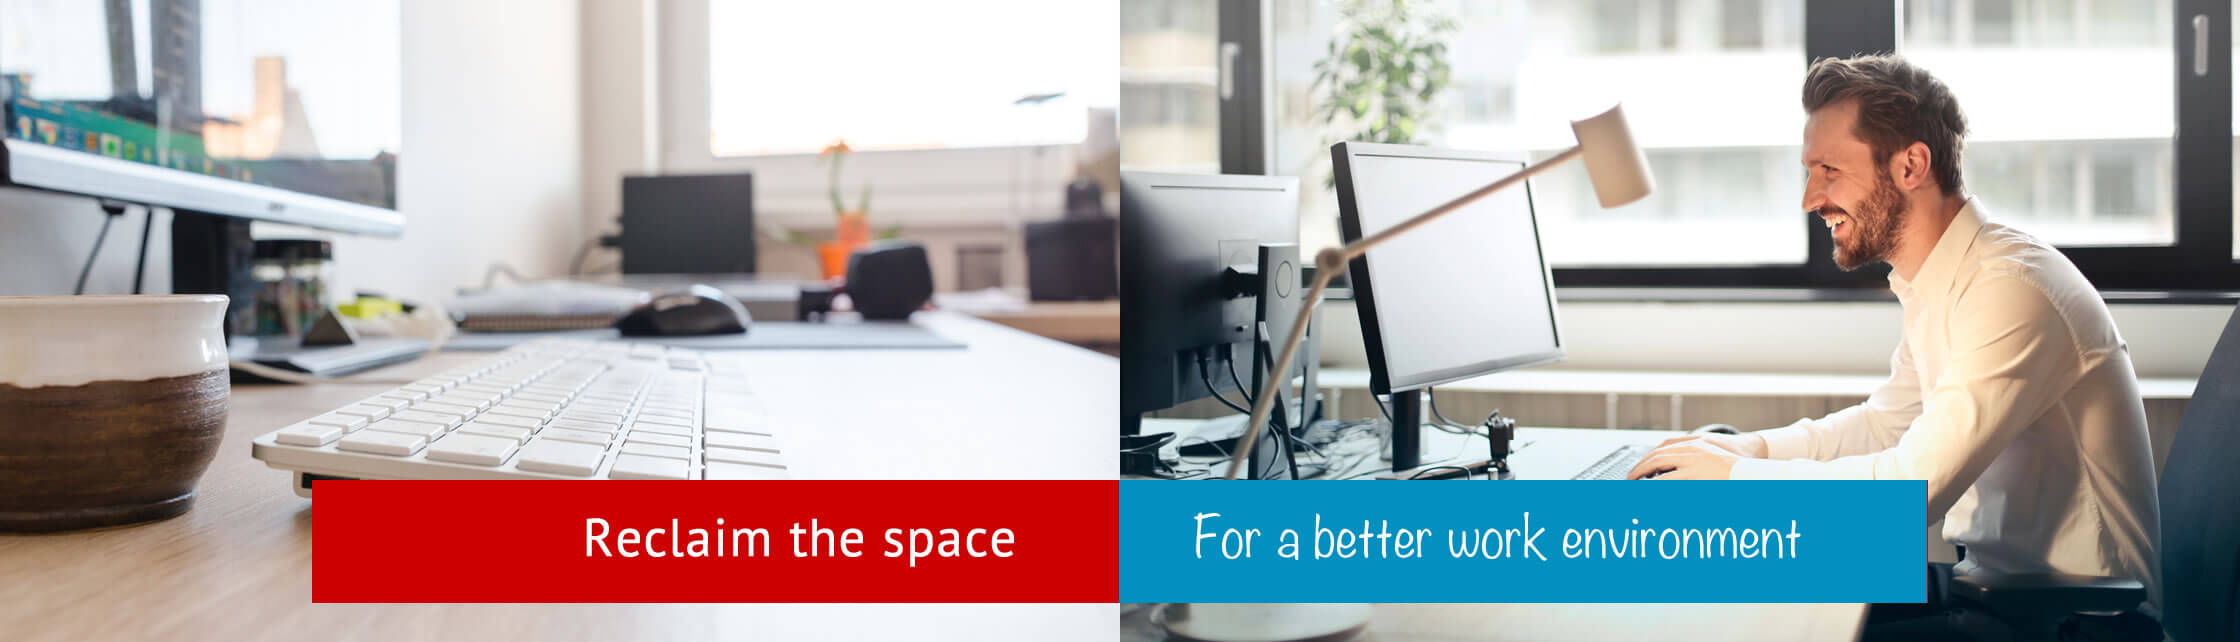 Reclaim the space for a better work environment